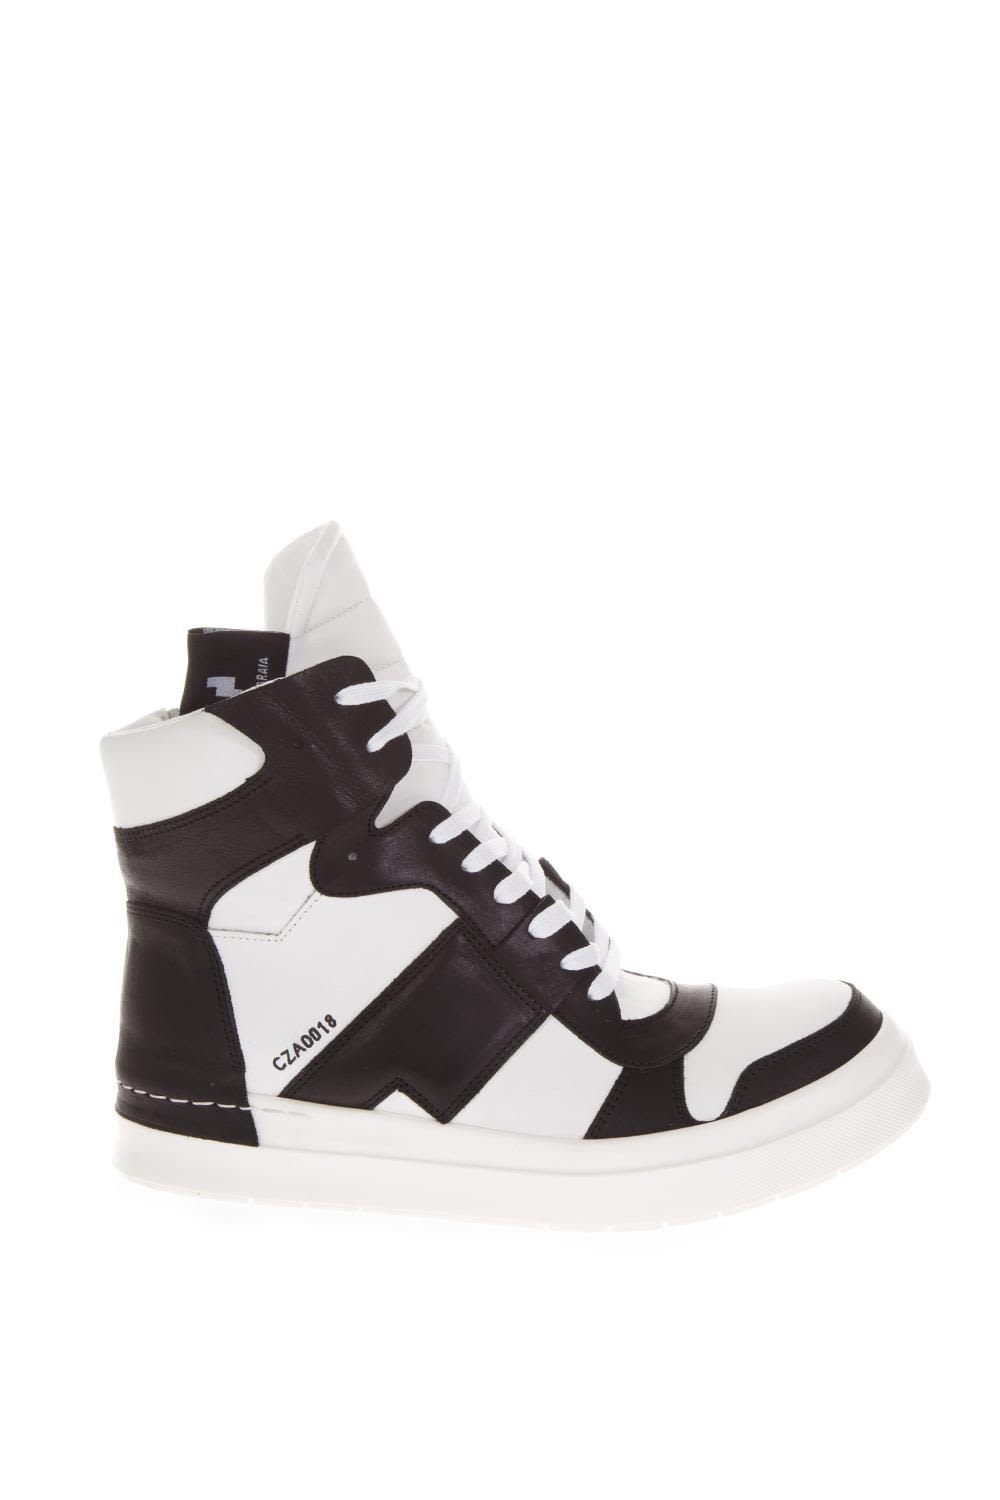 CINZIA ARAIA HIGH-TOP SNEAKERS IN BLACK AND WHITE LEATHER